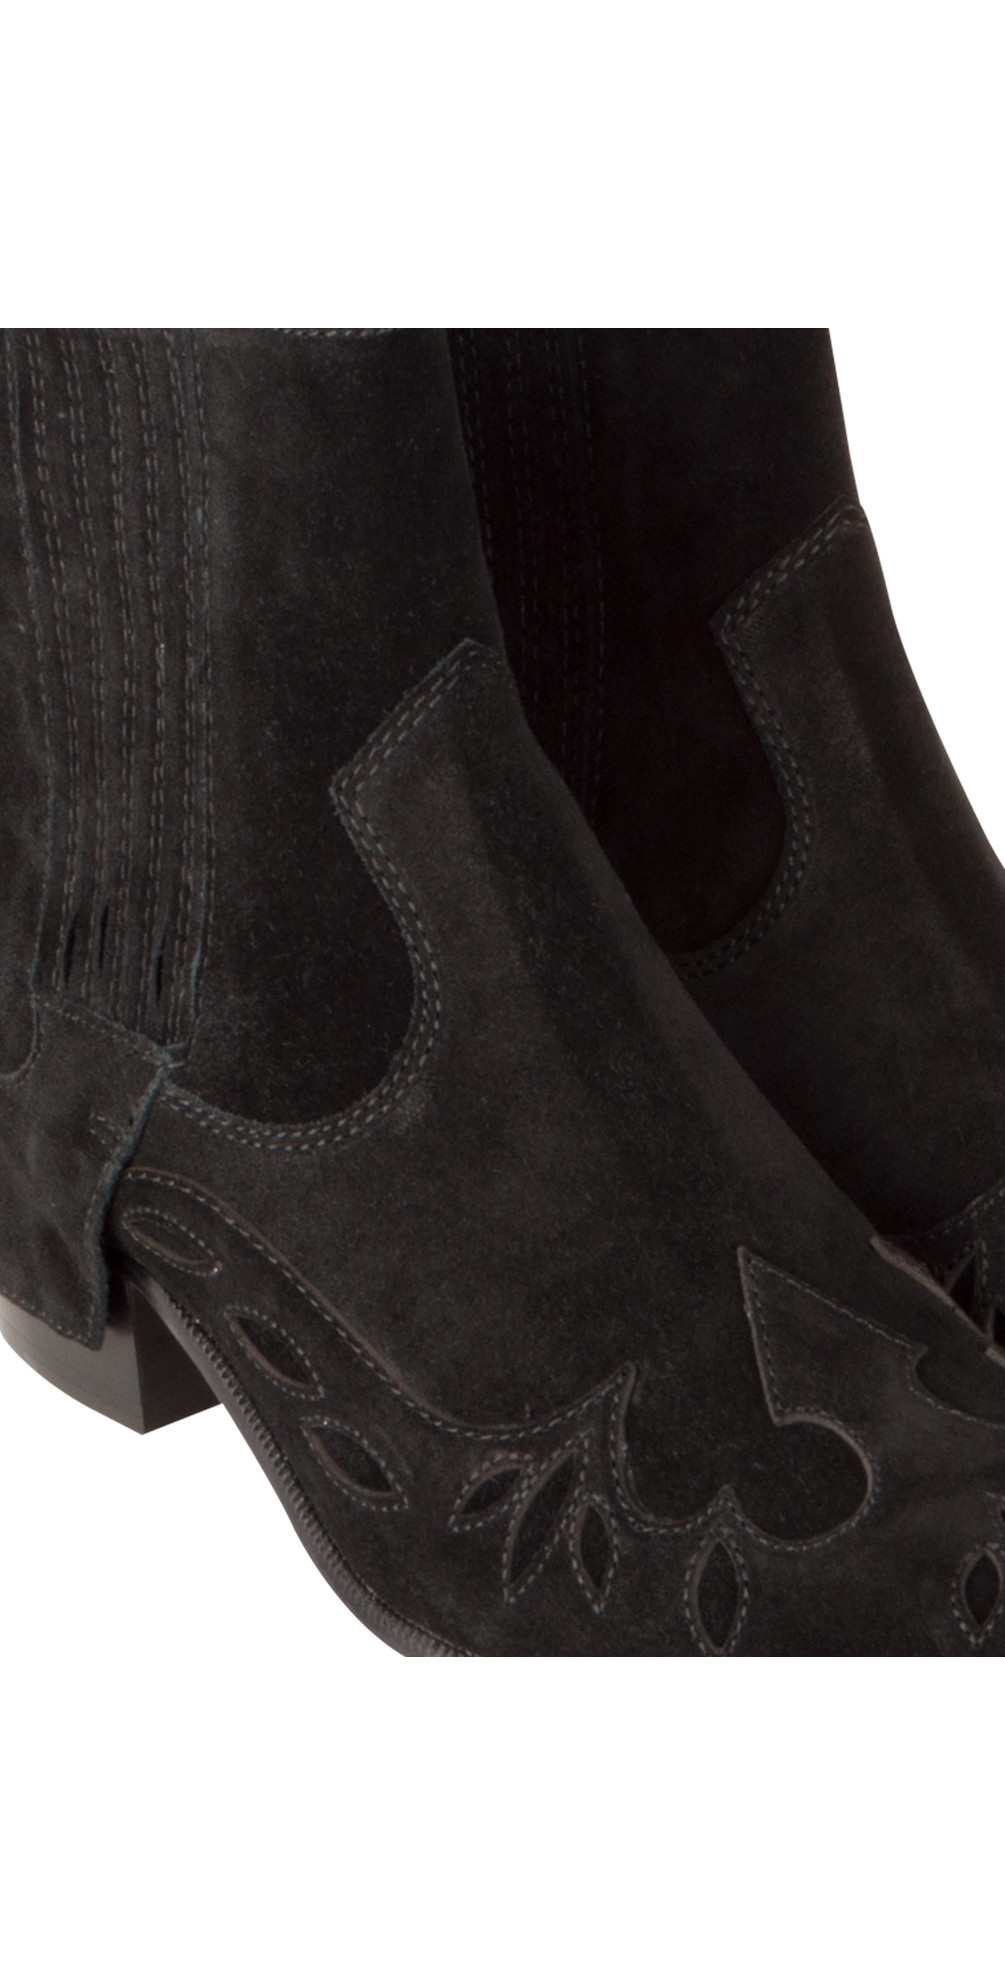 LIV Western Ankle Boot main image